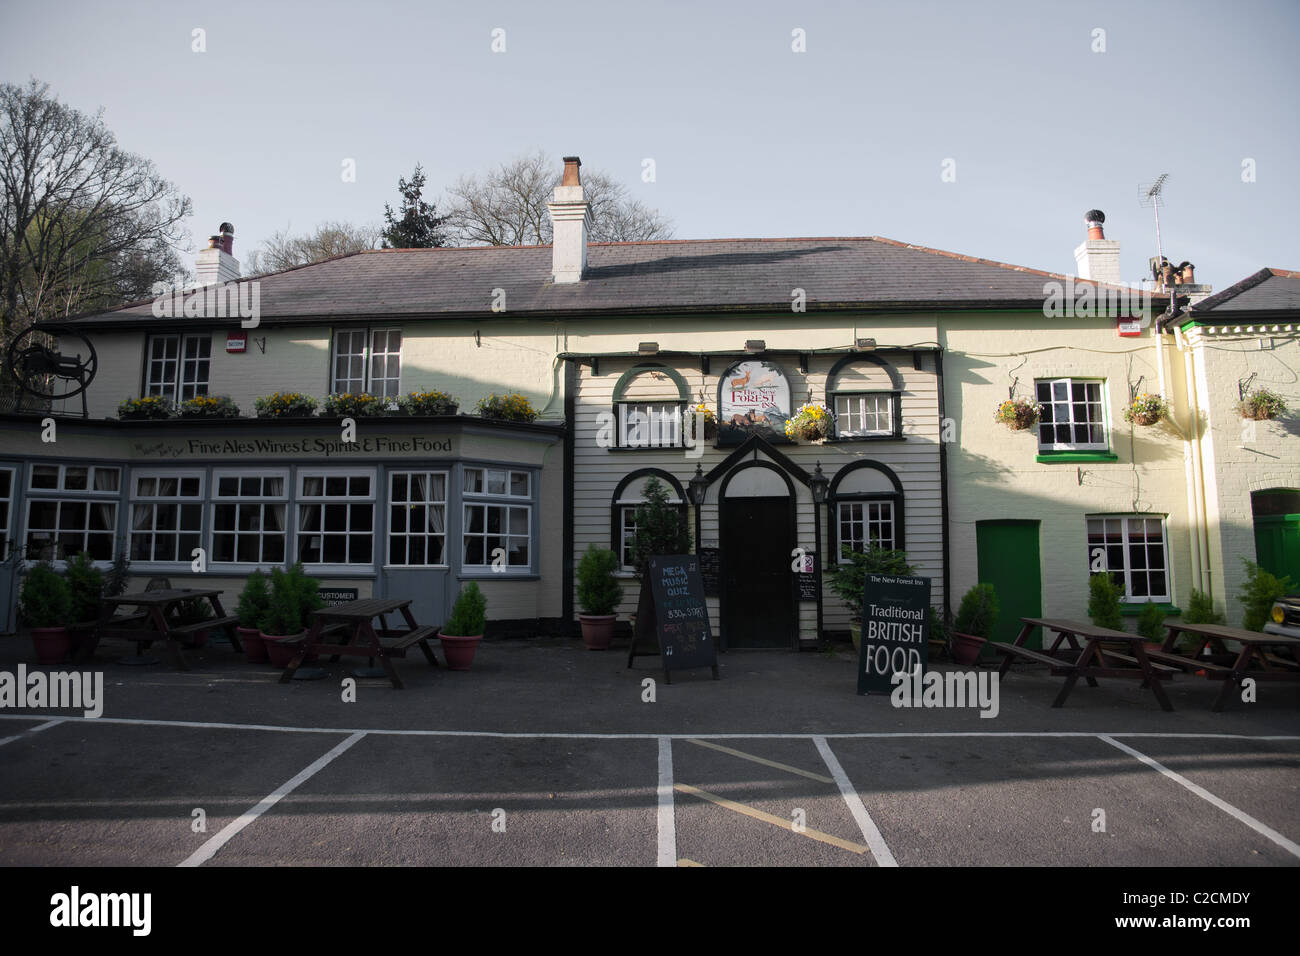 The New Forest Inn, Emery Down in the New Forest Nr. Ringwood - Stock Image